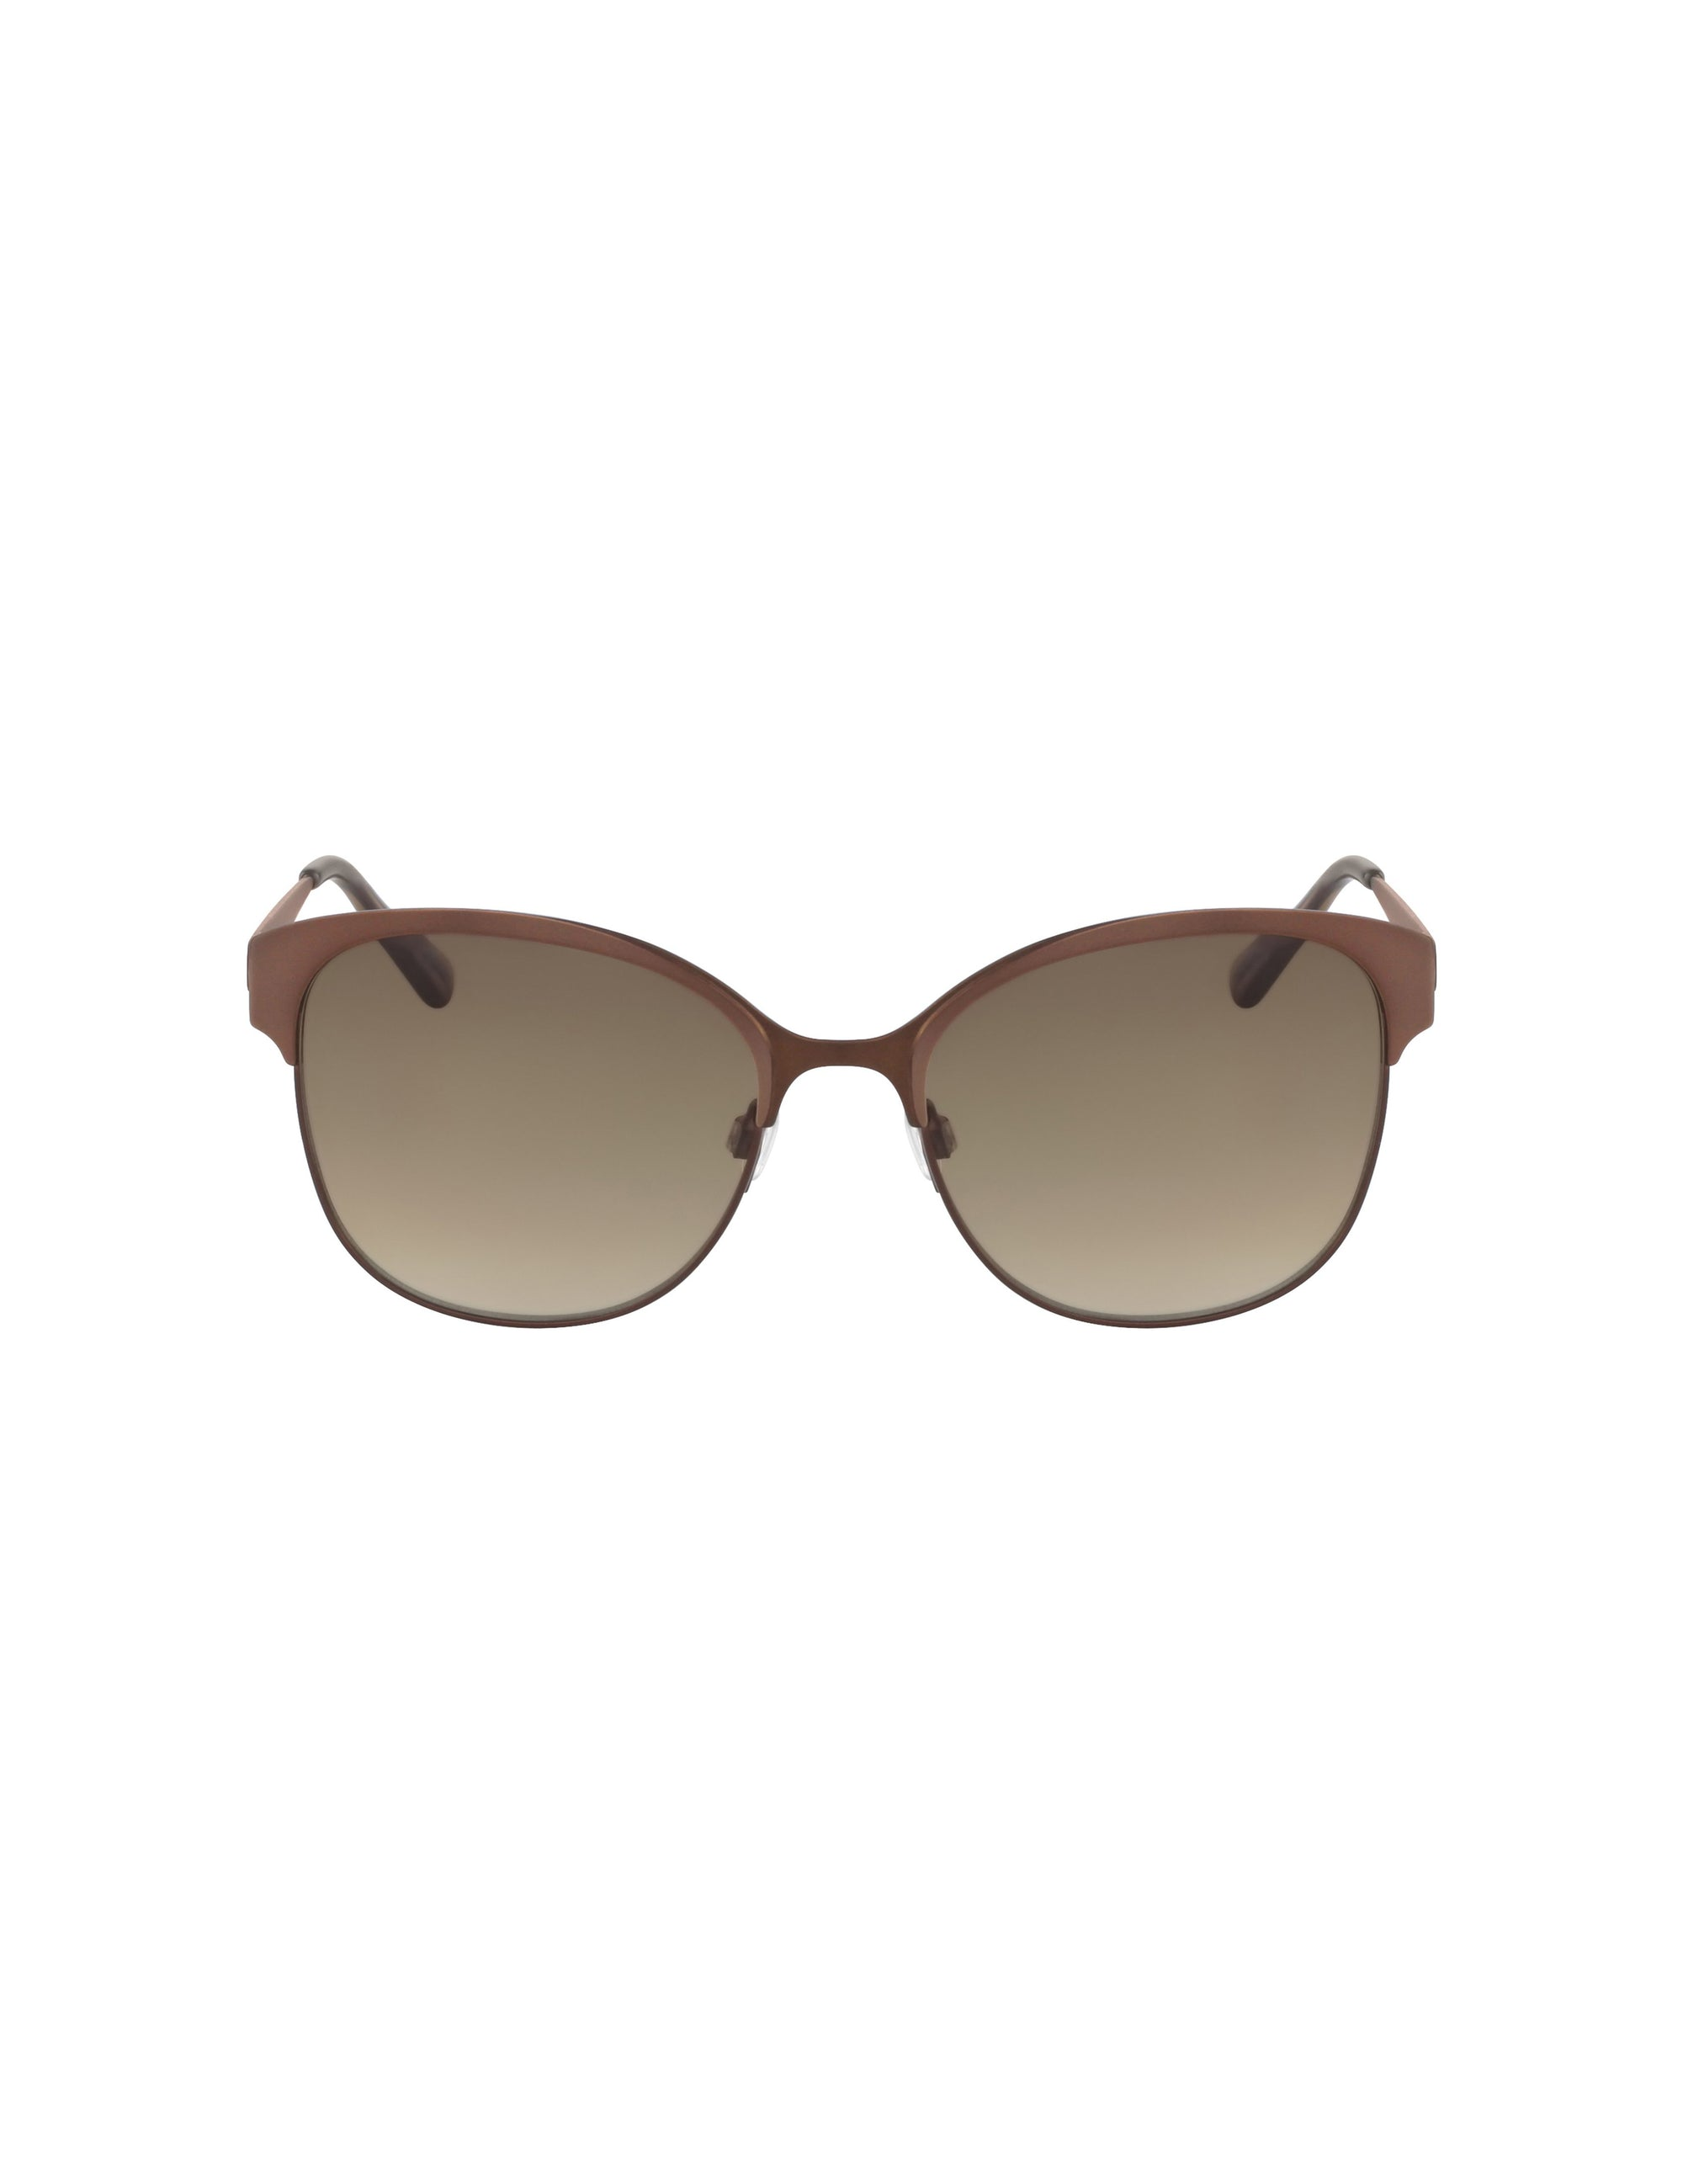 Mocha Two-Tone Metal Square Sunglasses